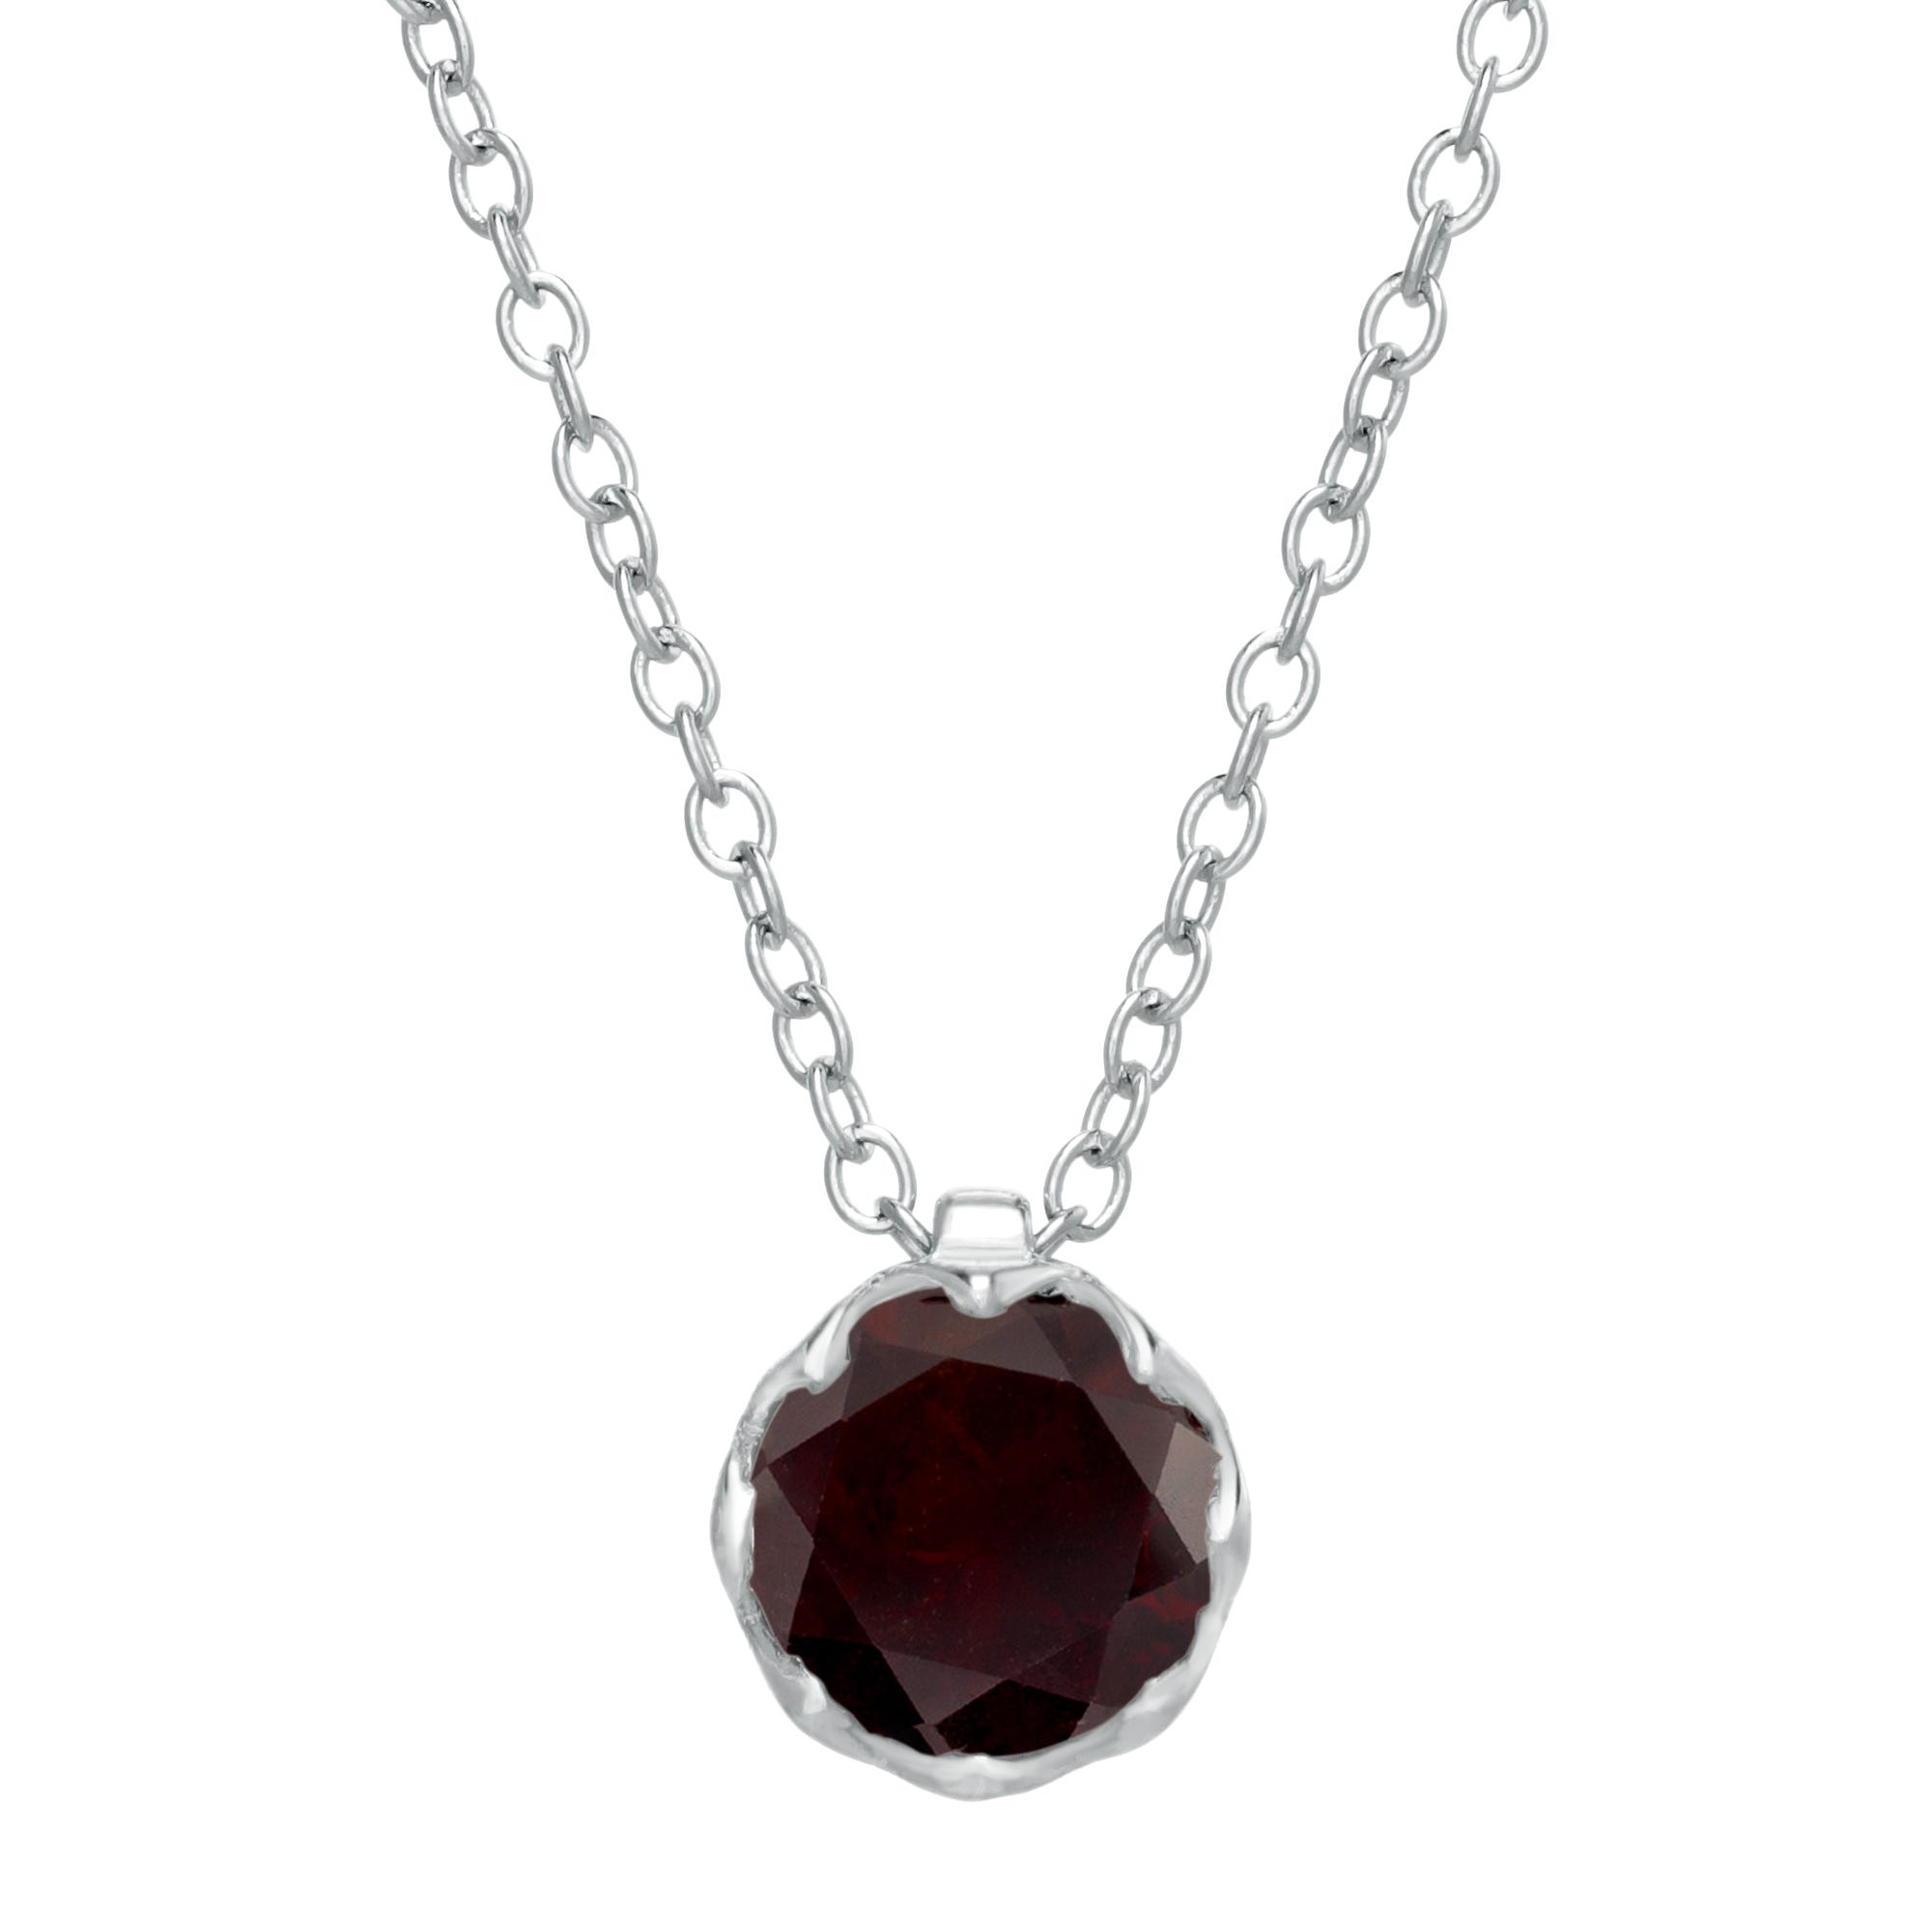 Round Garnet Gemstone Pendant in Sterling Silver